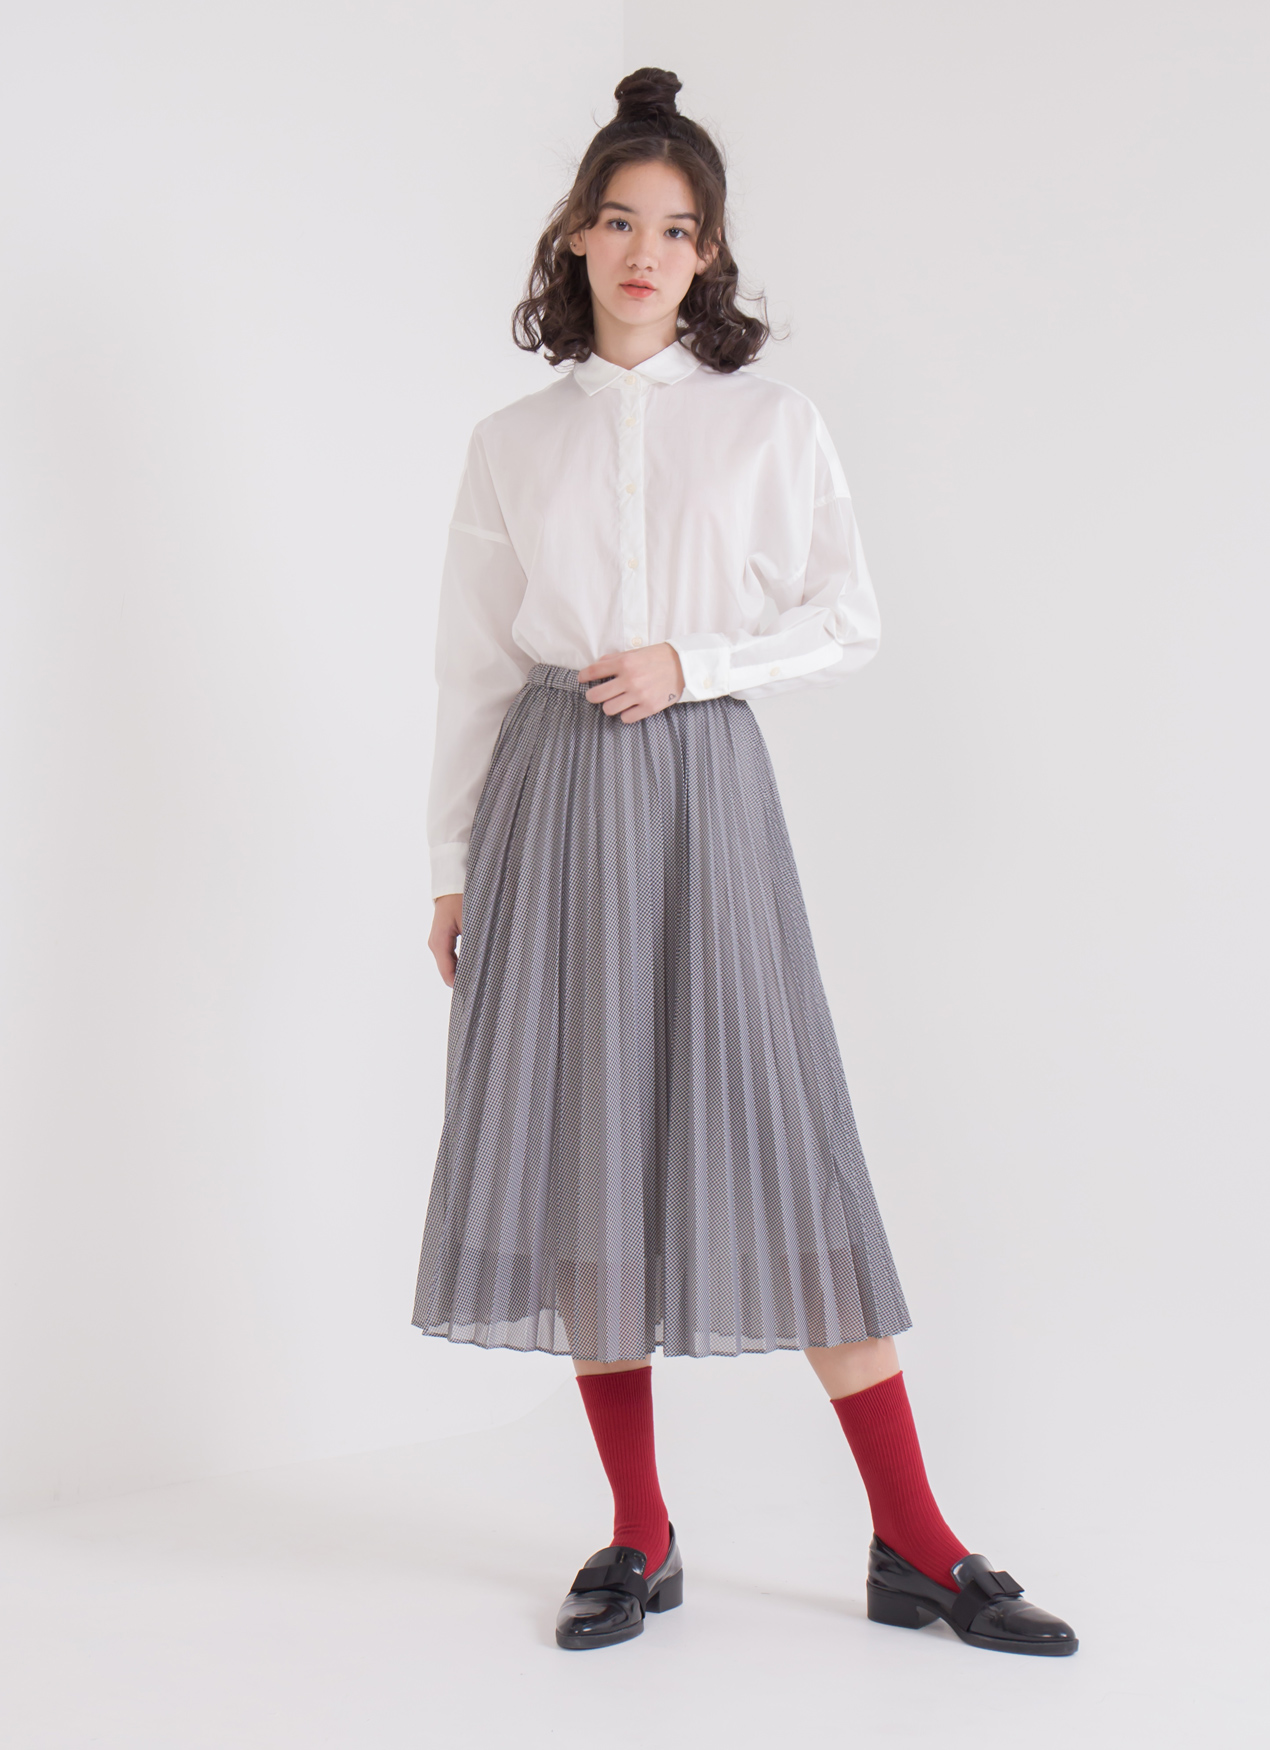 American Holic Jordan Skirt - Gingham Check